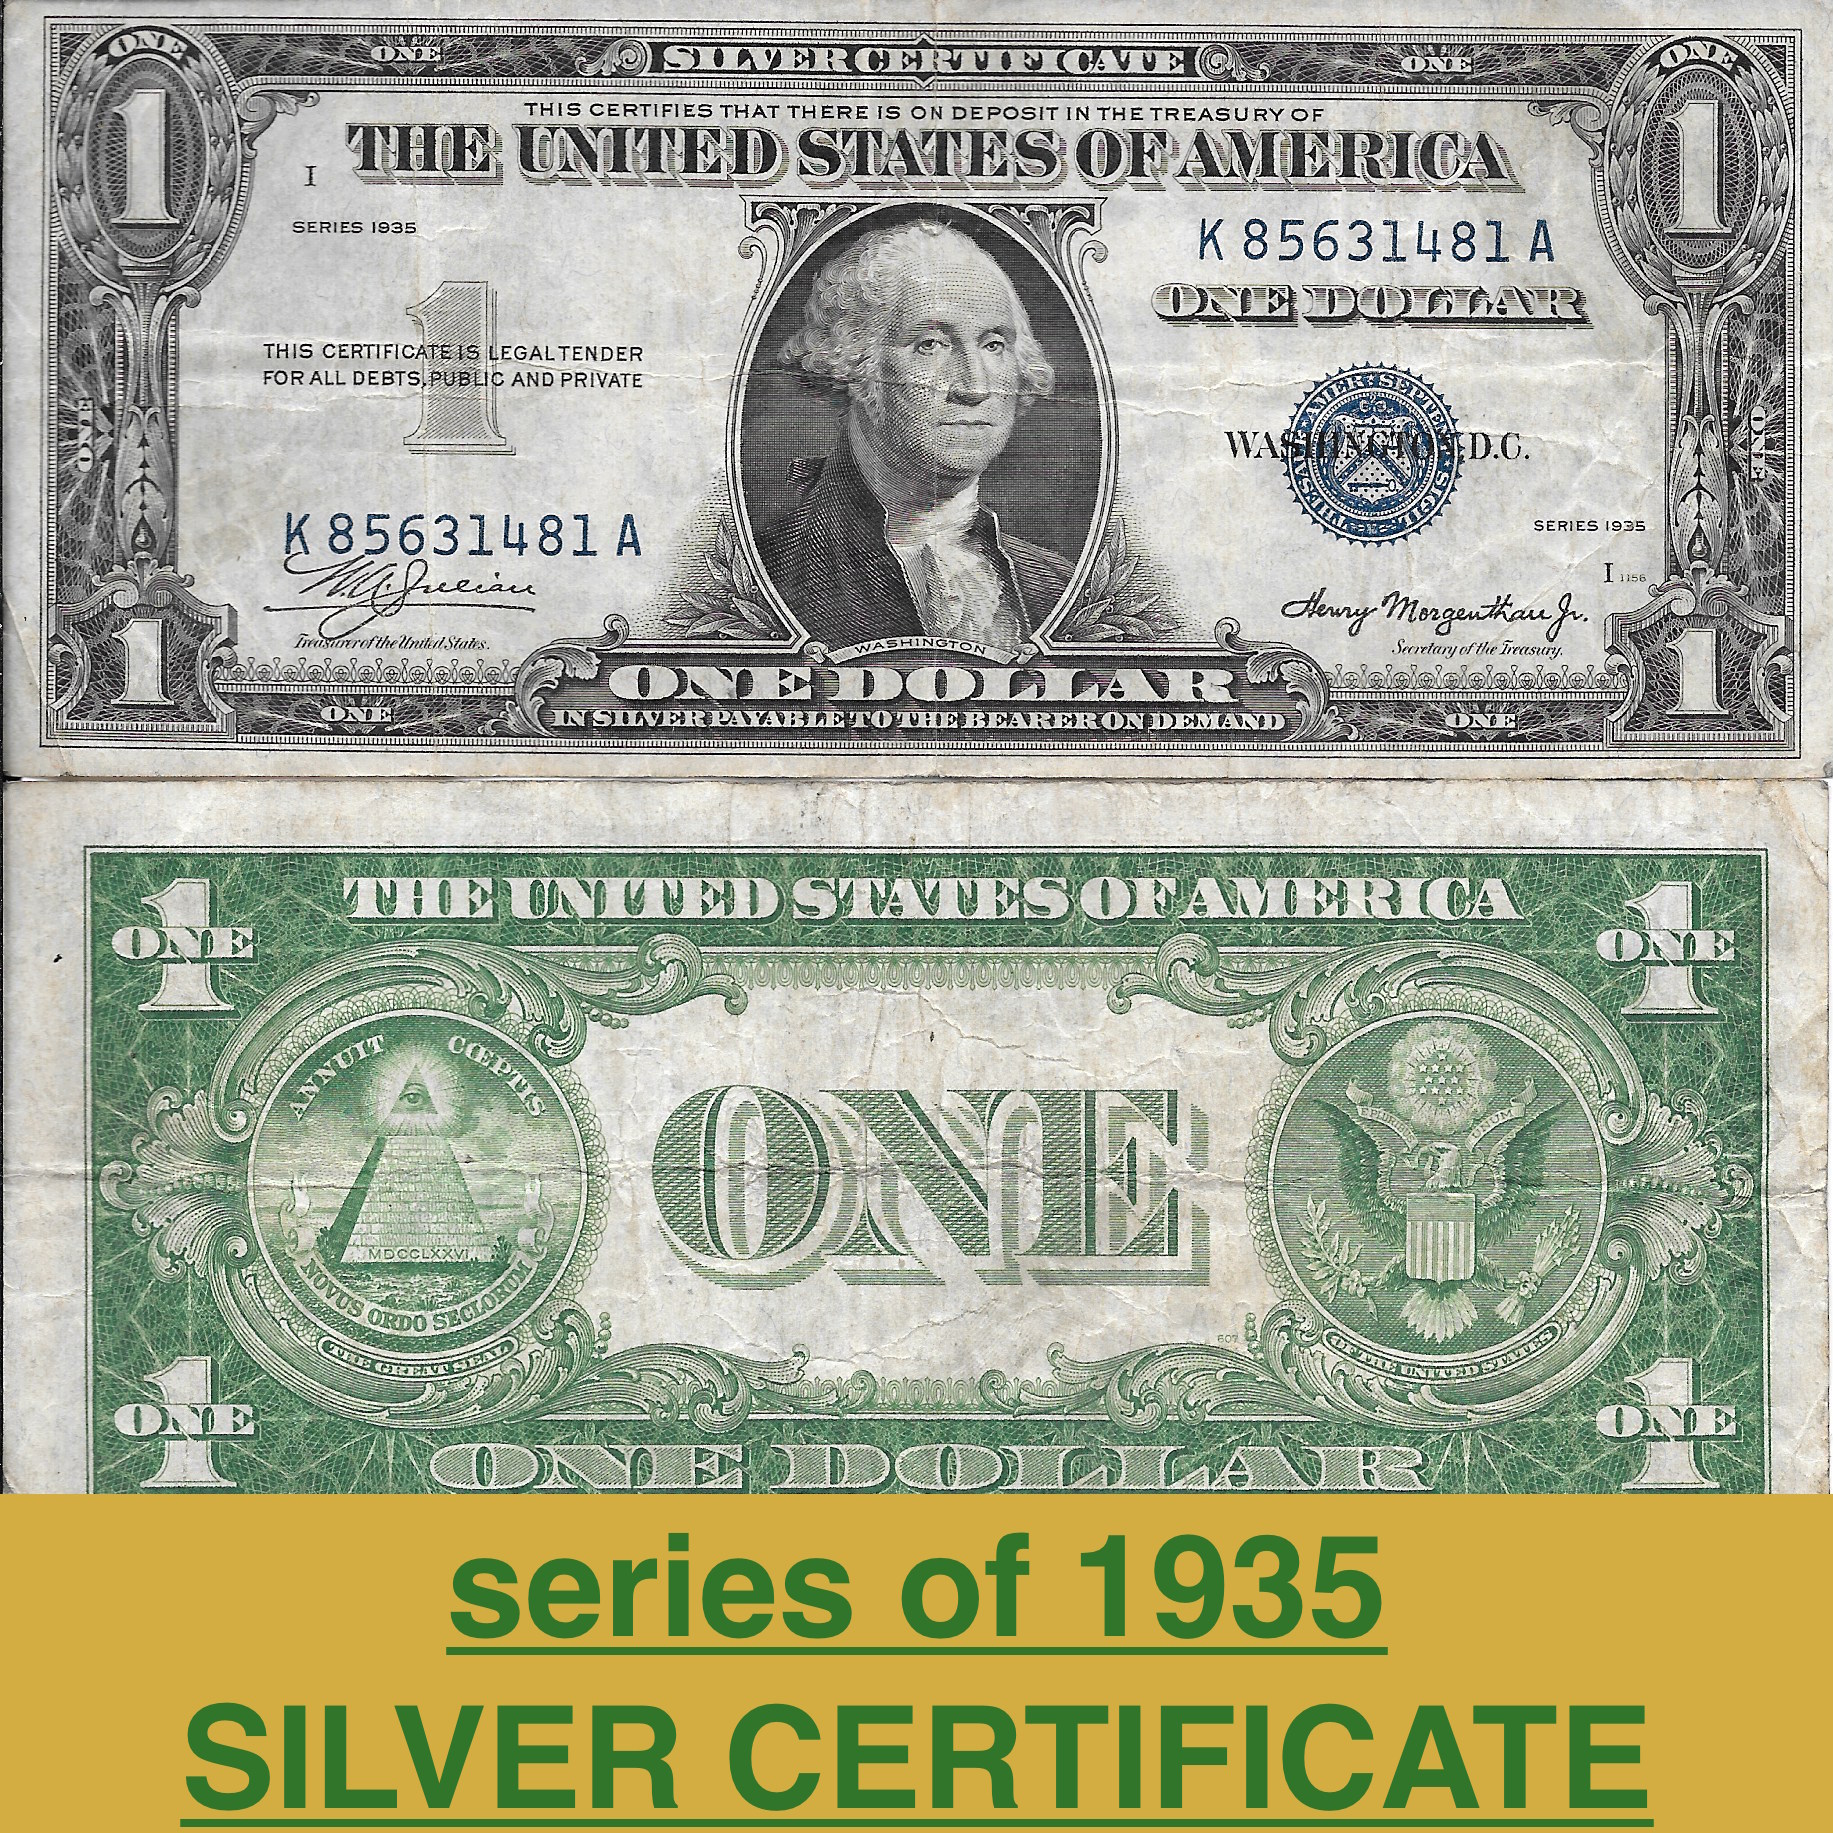 $1 SILVER CERTIFICATE ****series of 1935**** V.GOOD/V.FINE - Alan\'s ...